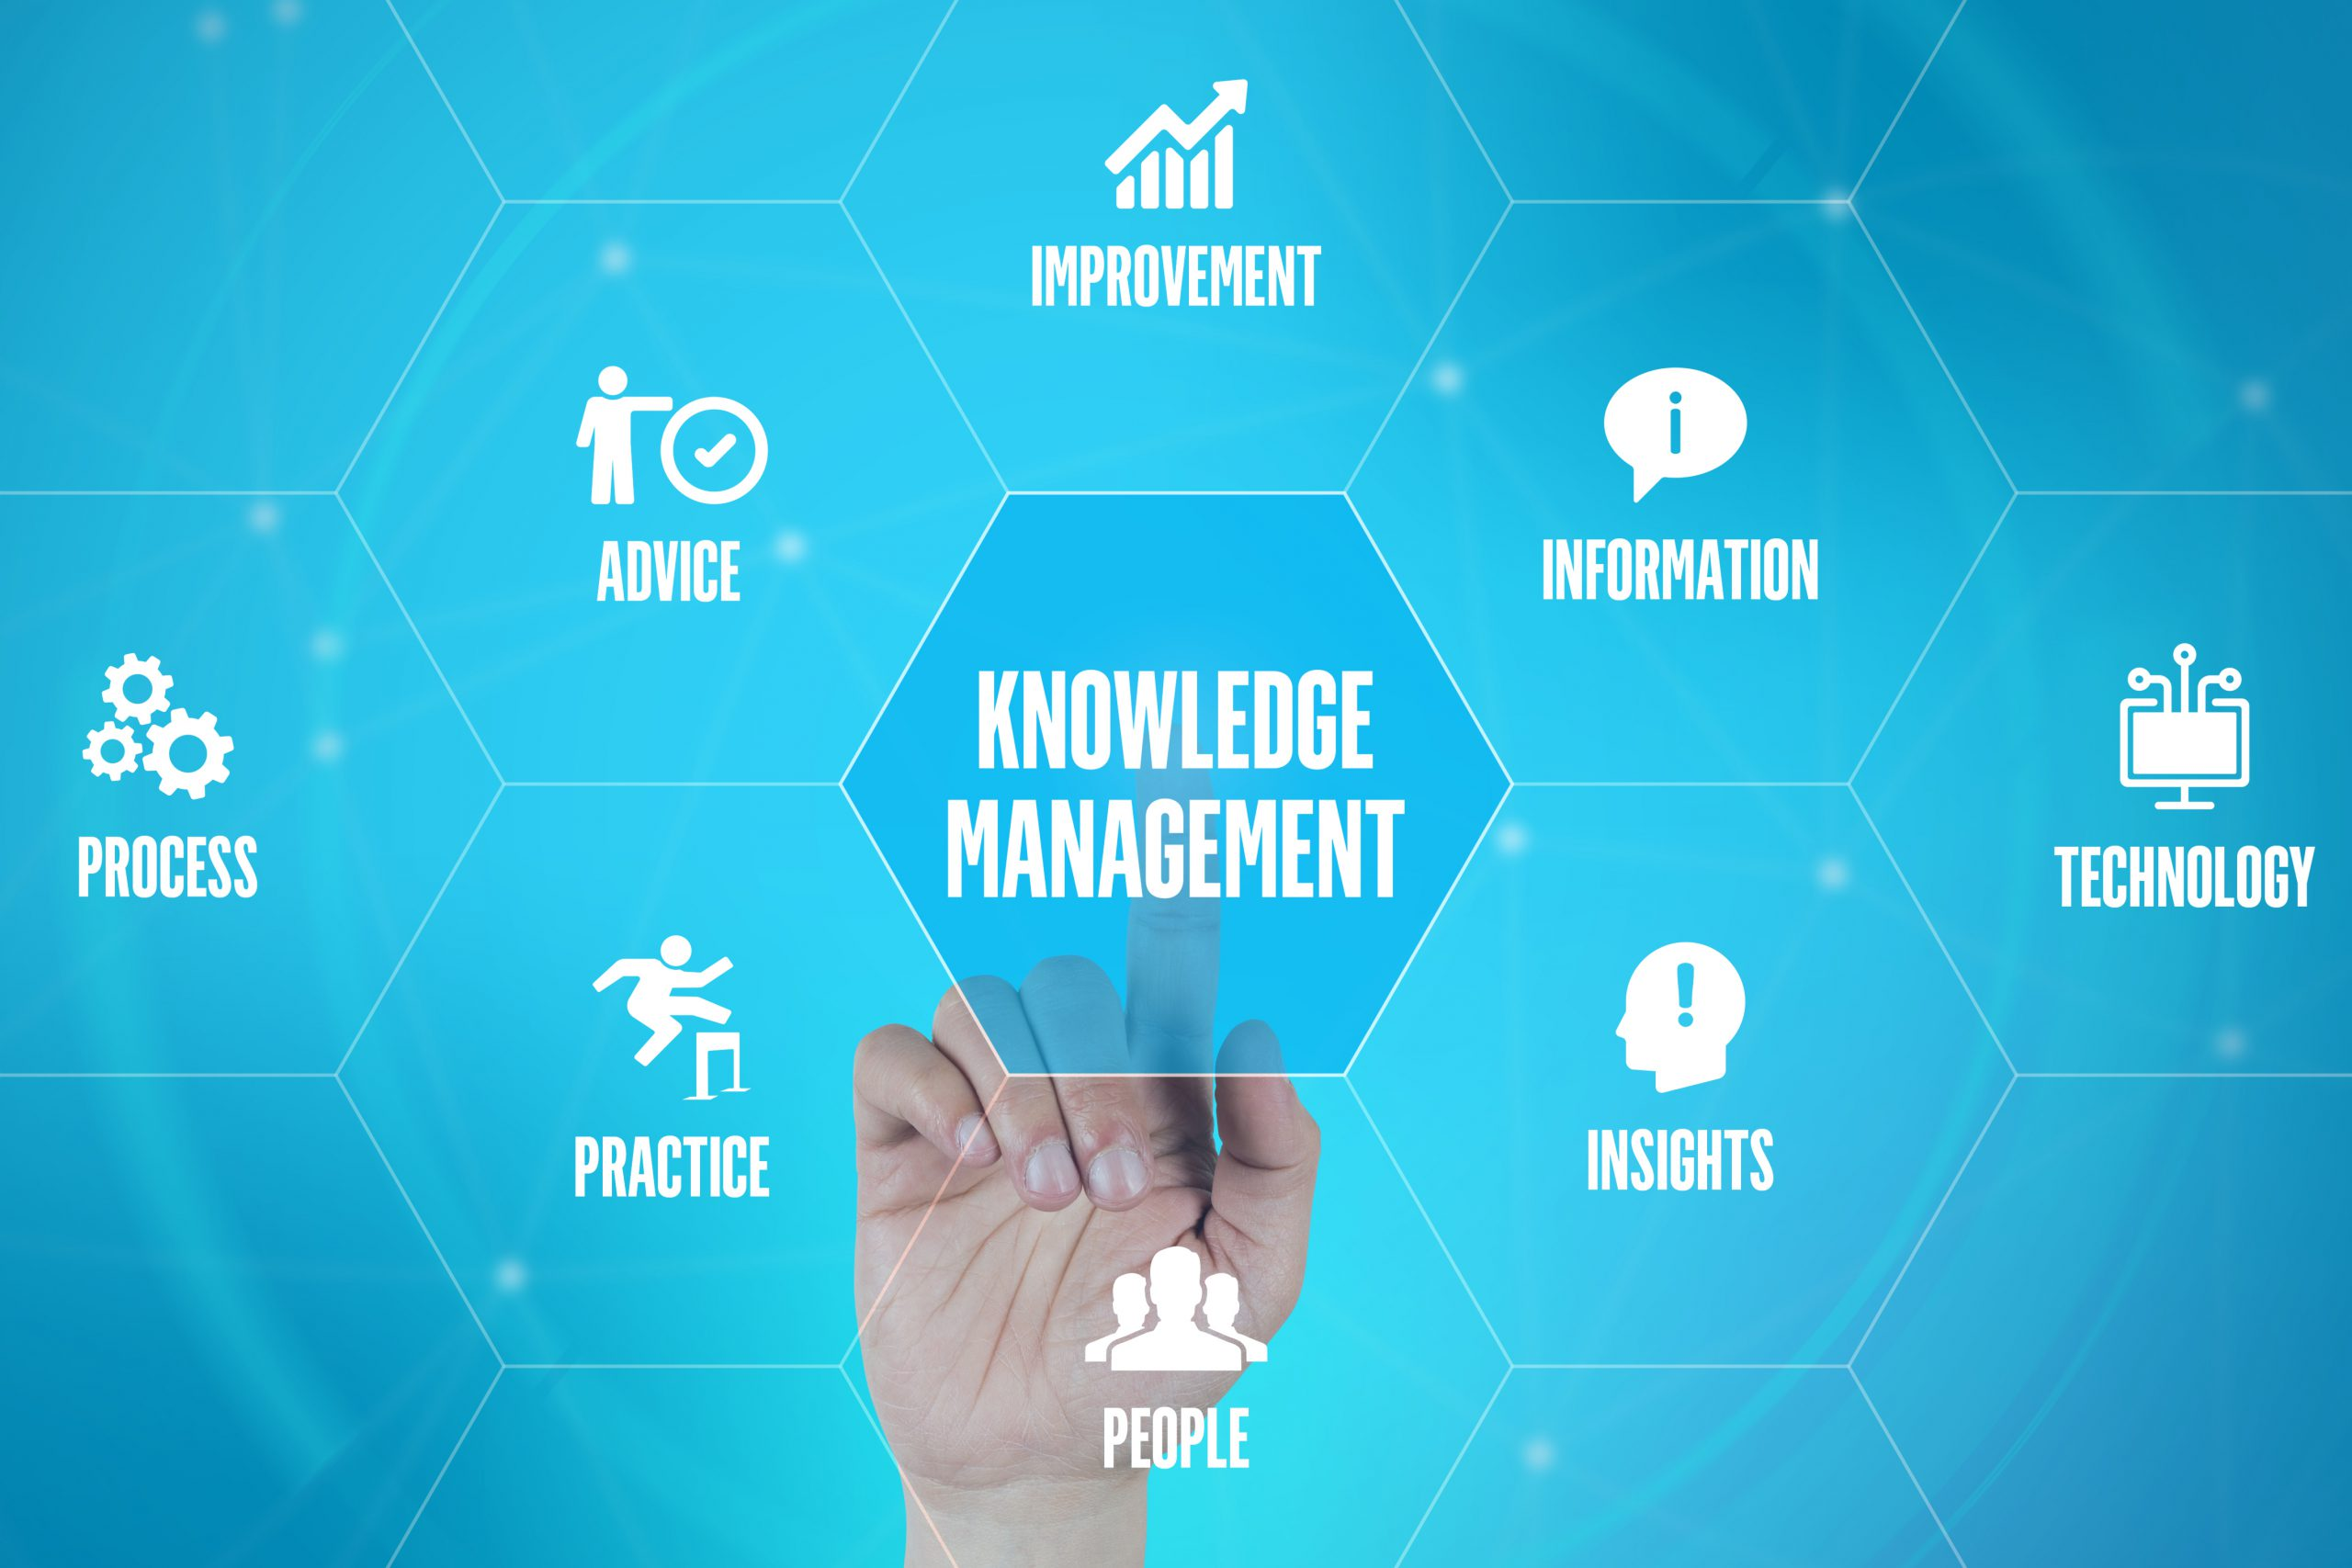 What is Knowledge-Centered Support (KCS) exactly?